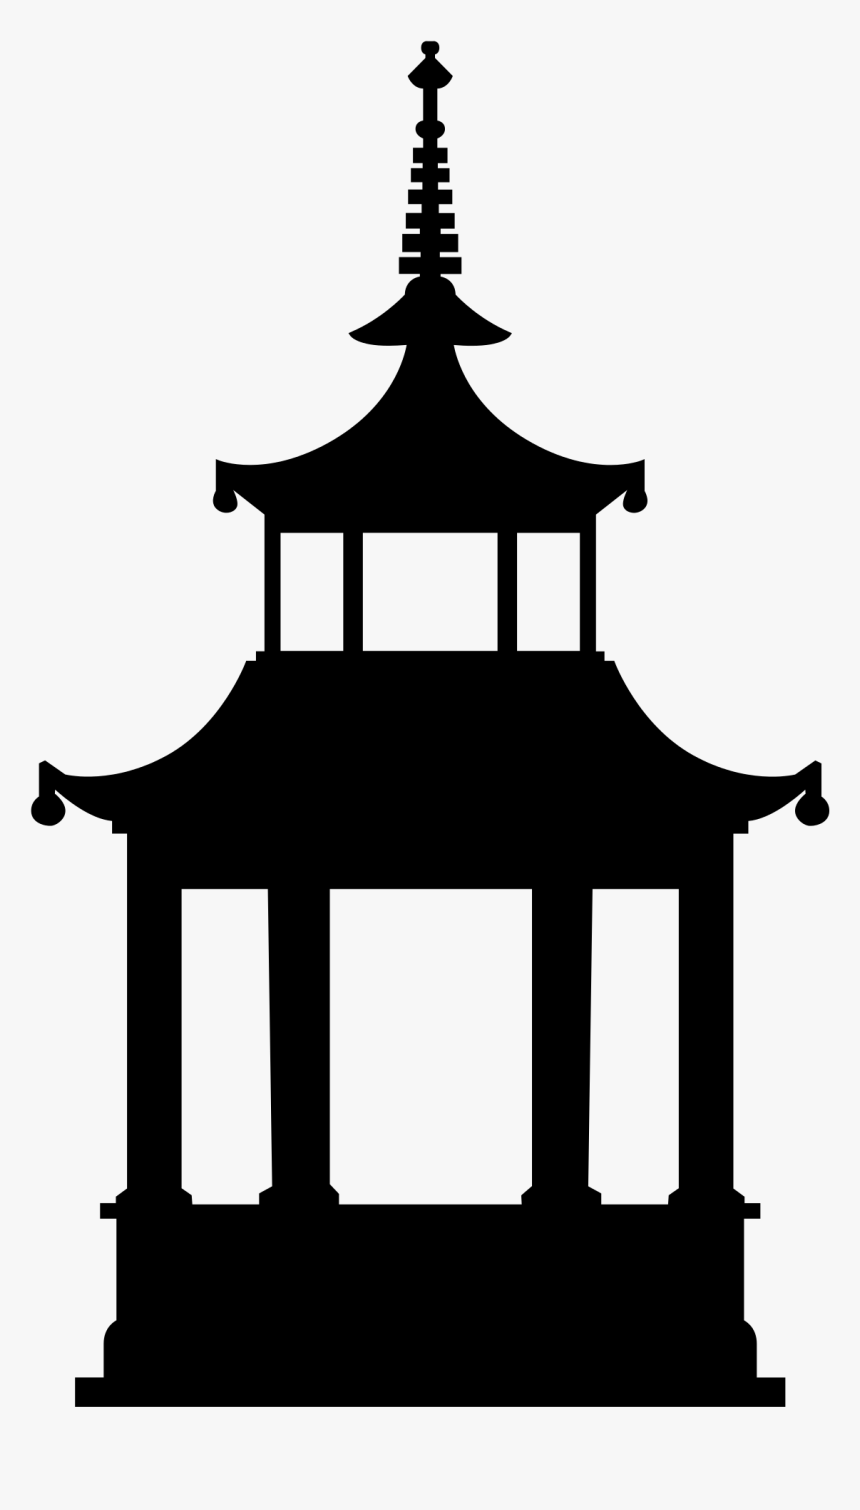 Buddhist Temple Computer Icons Buddhism Clip Art - Temple Black And White Png, Transparent Png, Free Download